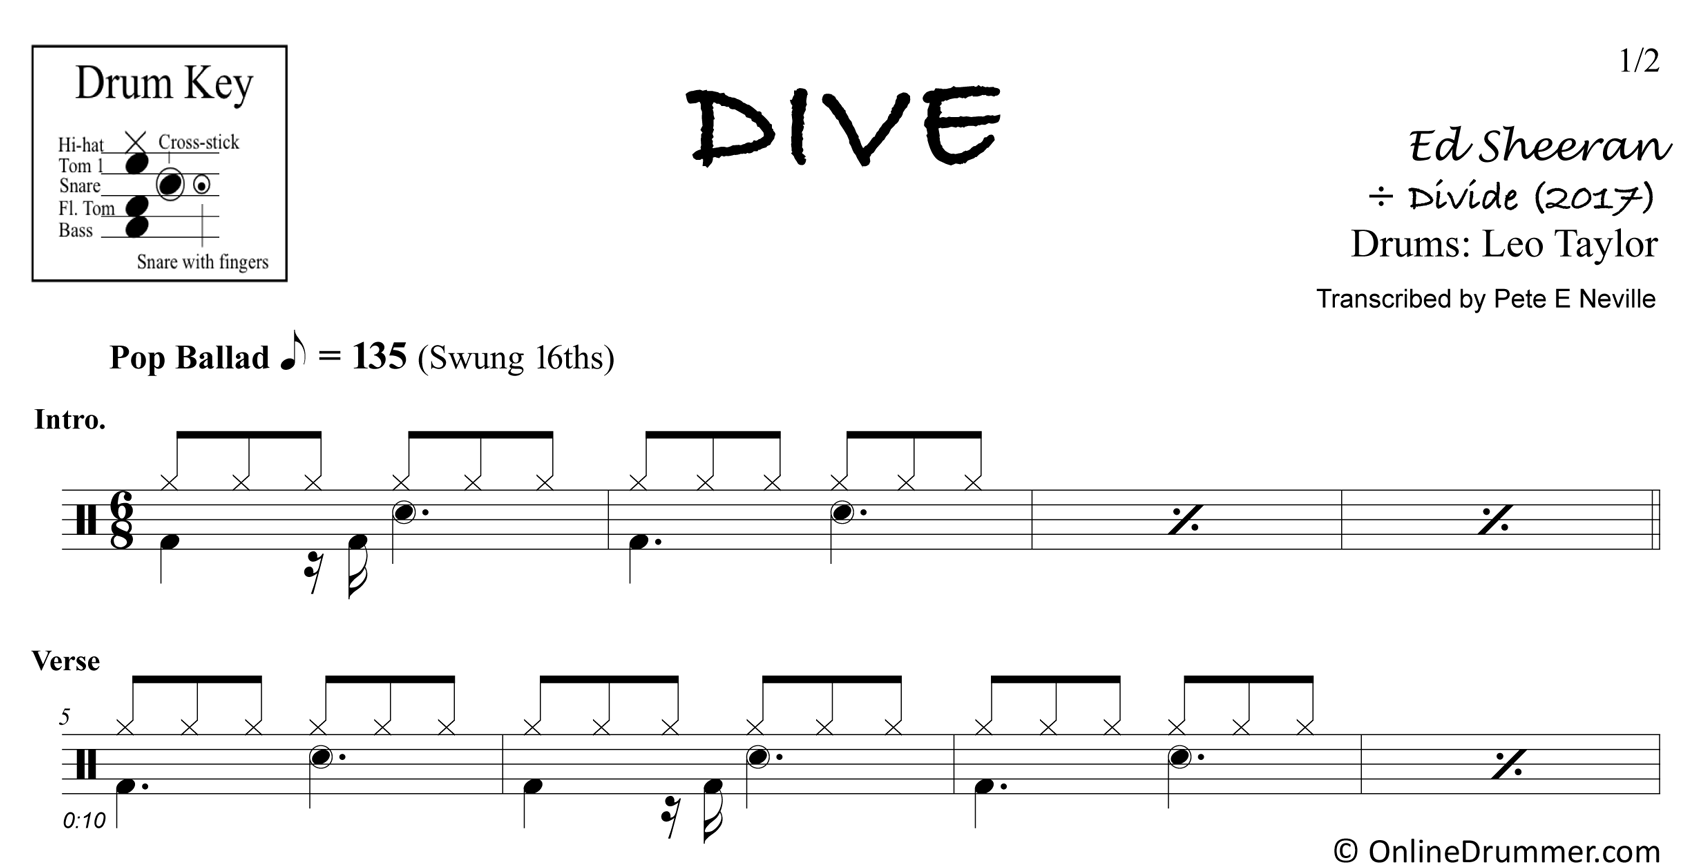 Dive - Ed Sheeran - Drum Sheet Music